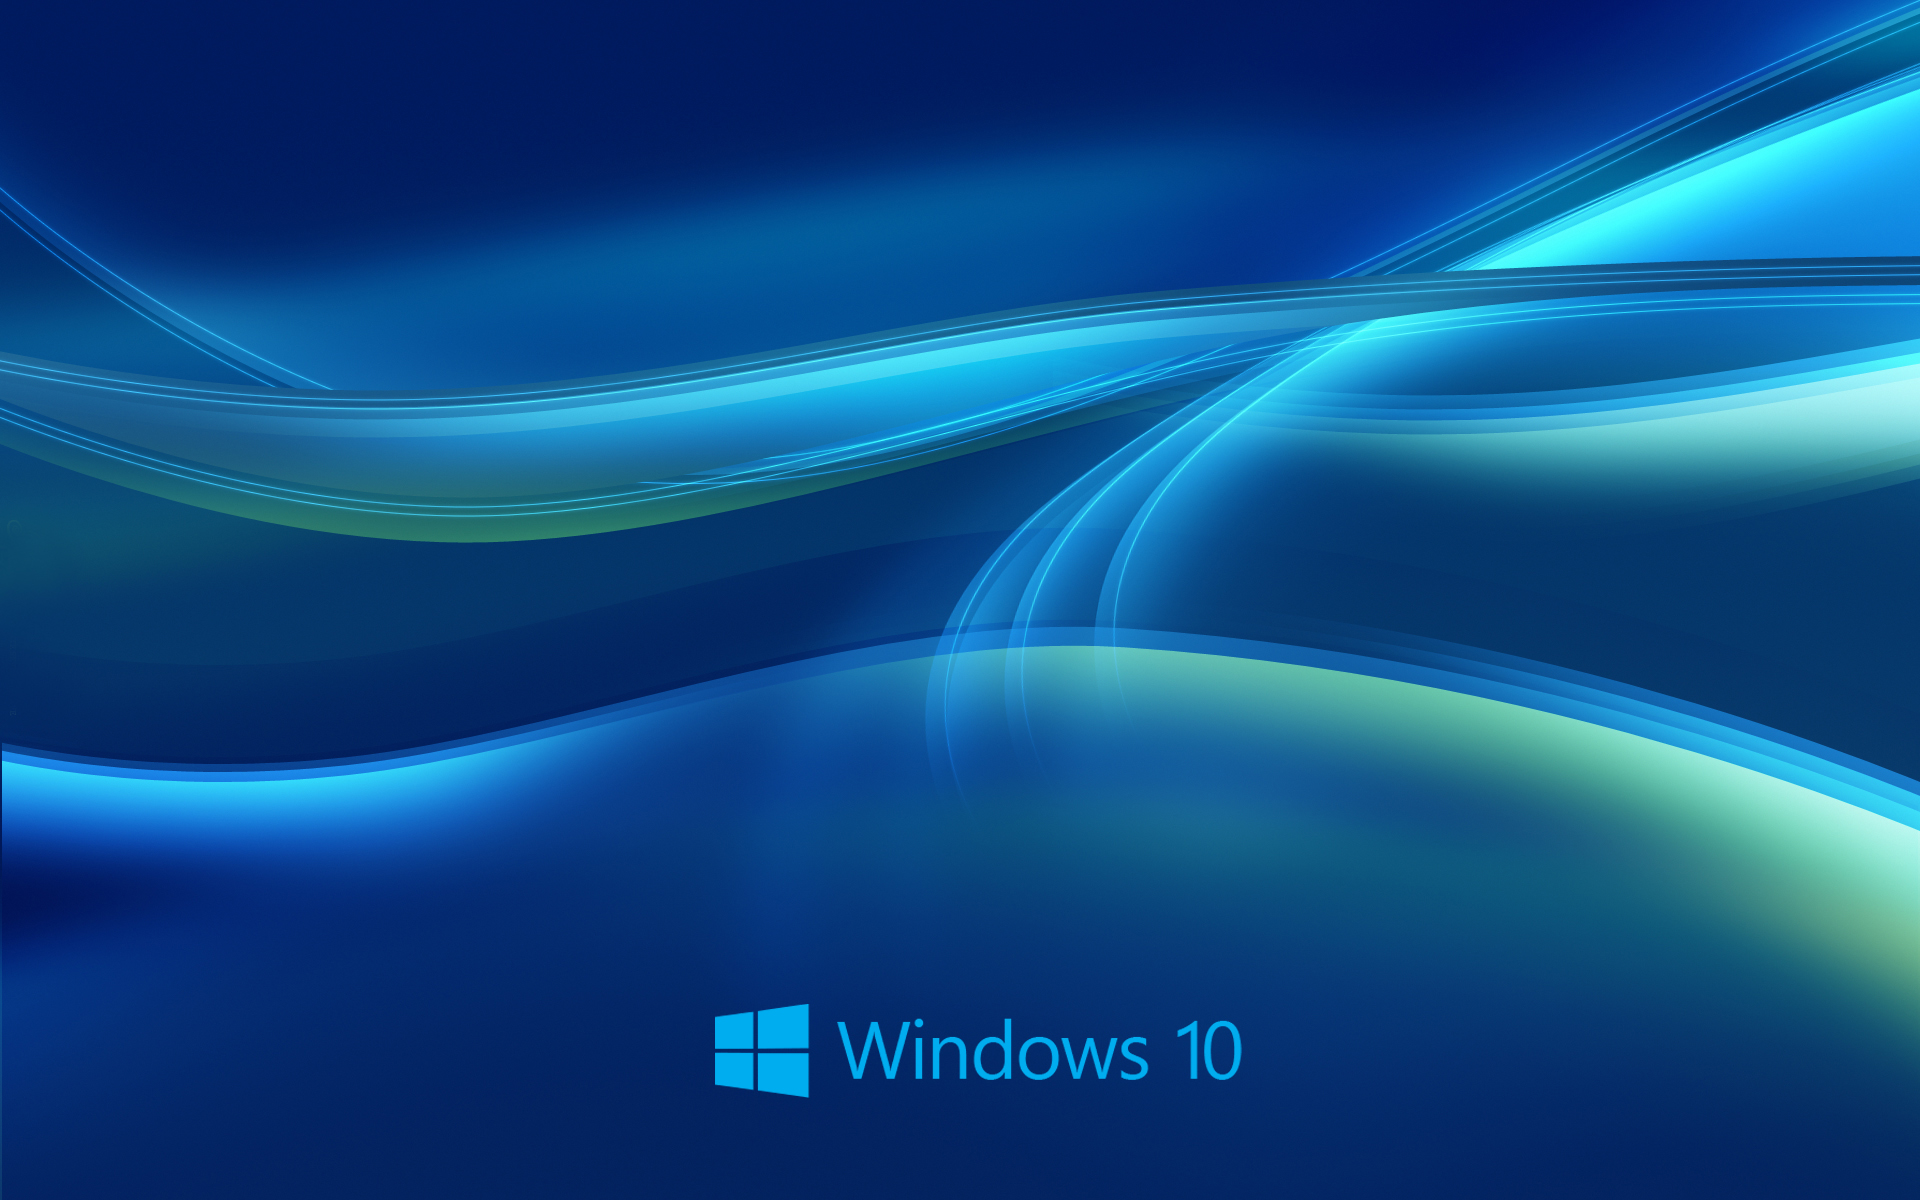 Windows 10 Wallpapers 10 1920x1200